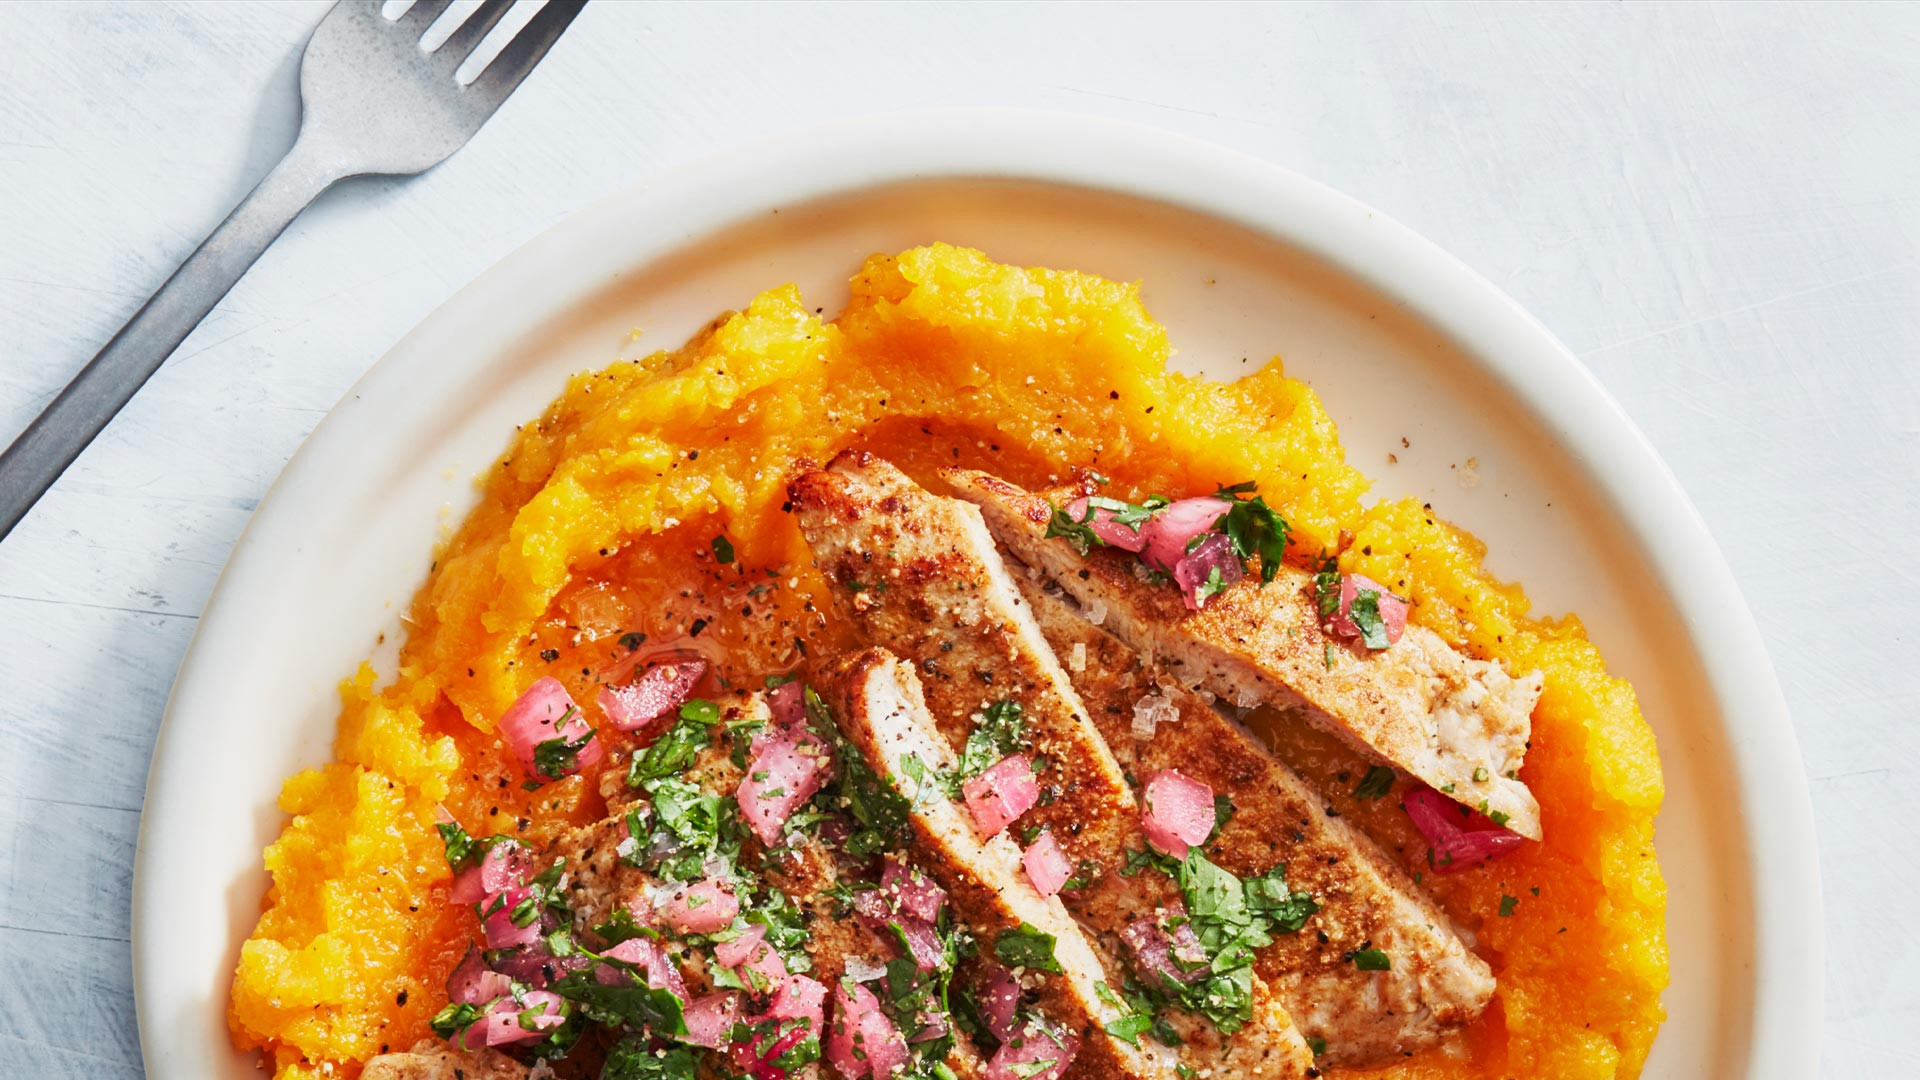 Healthyish's cumin pork cutlets with smashed butternut squash